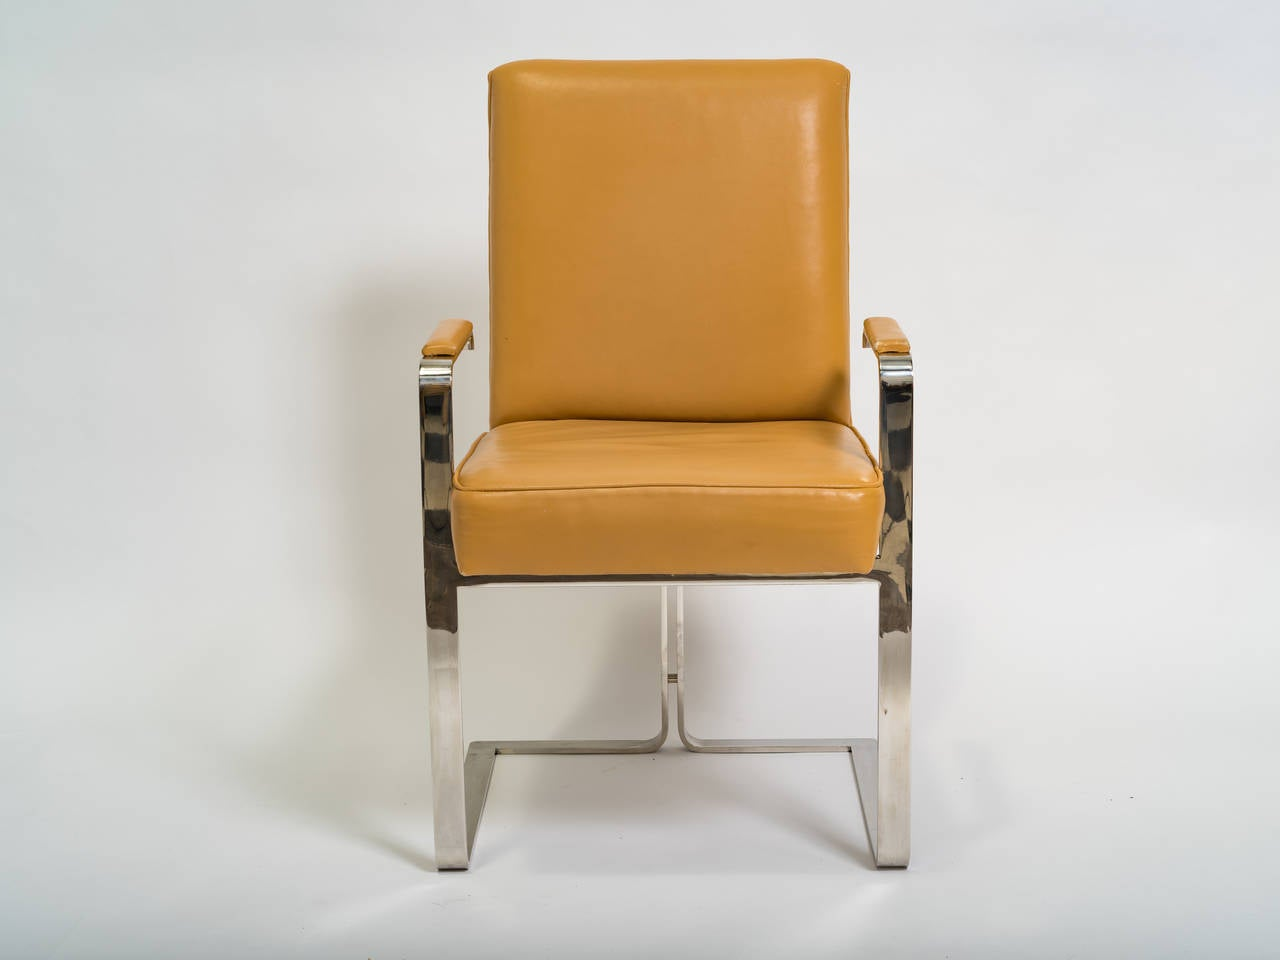 Vladimir Kagan Chrome and Leather Chair In Good Condition For Sale In Tarrytown, NY